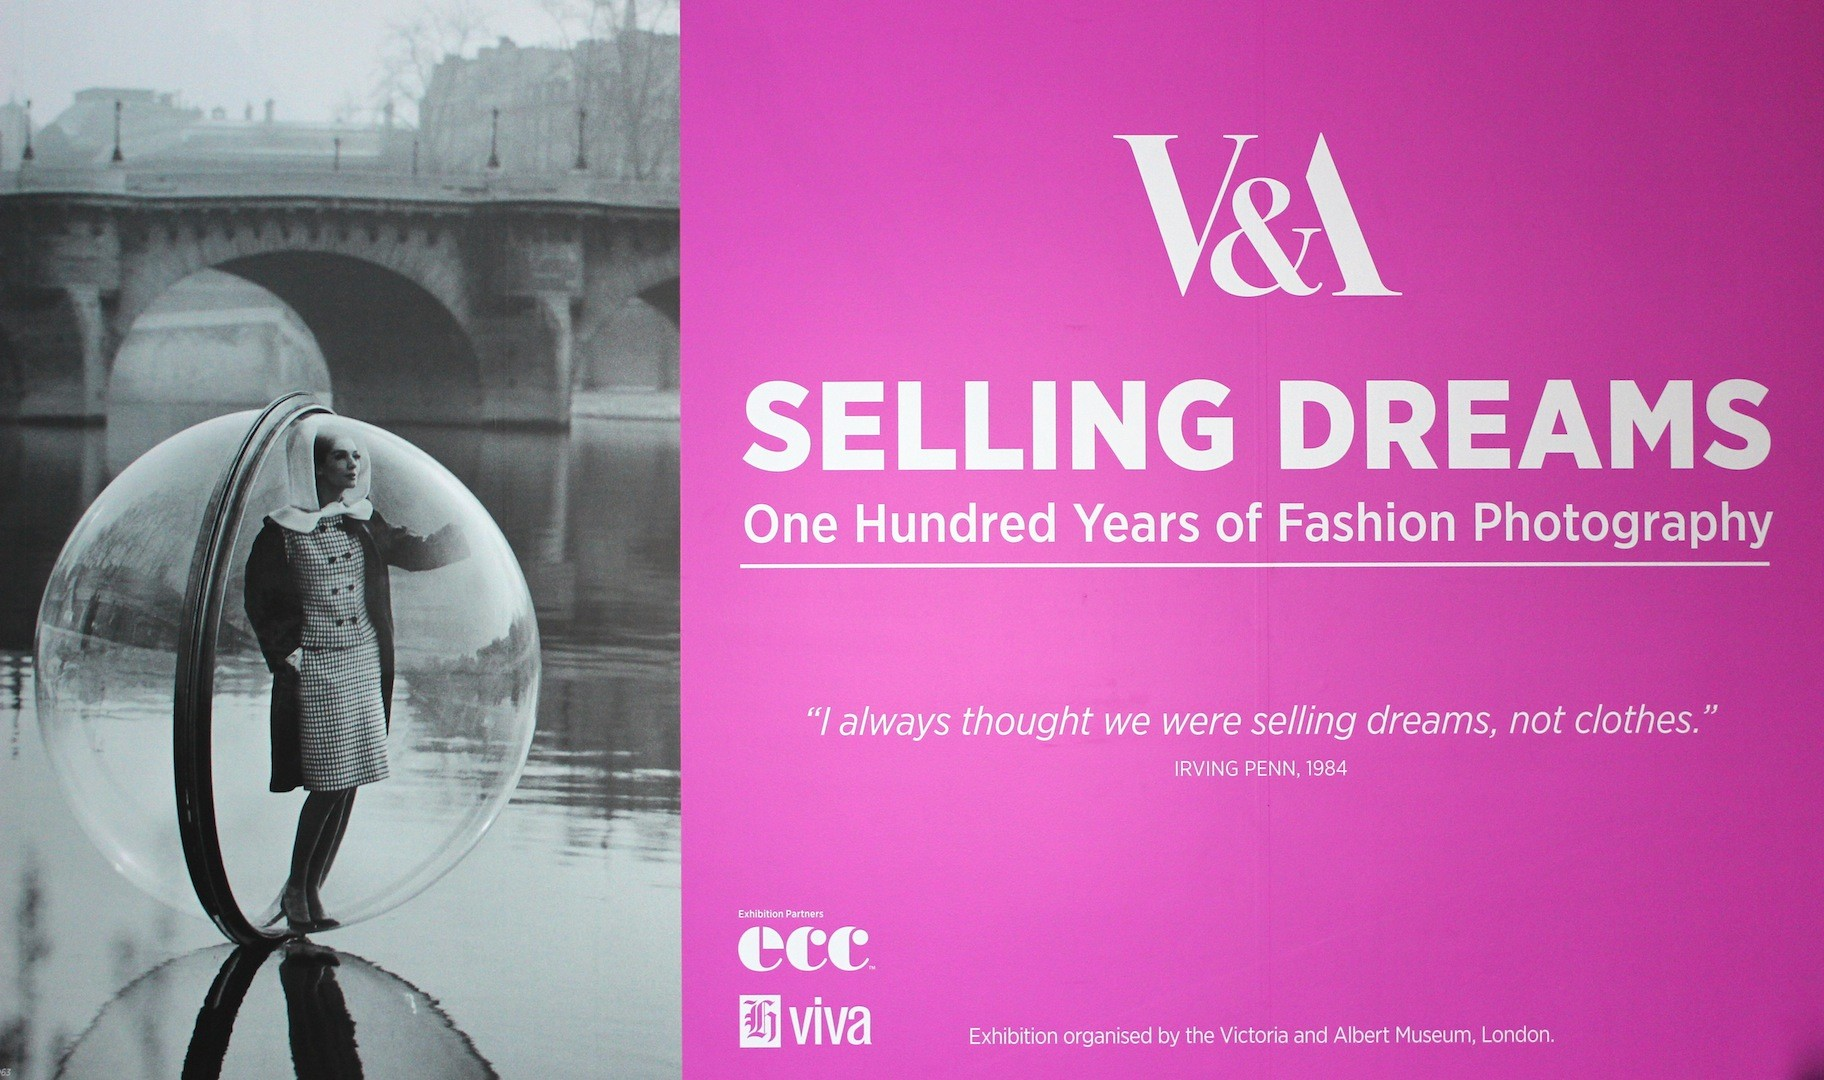 AMECCdream, V&A, Auckland Museum, Selling Dreams, 100 years of fashion photography, beauty blog nz, fashion blog nz, style blog nz, beauty media nz, fashion media nz, angie fredatovich, gurlinterrupted, fashion, beauty